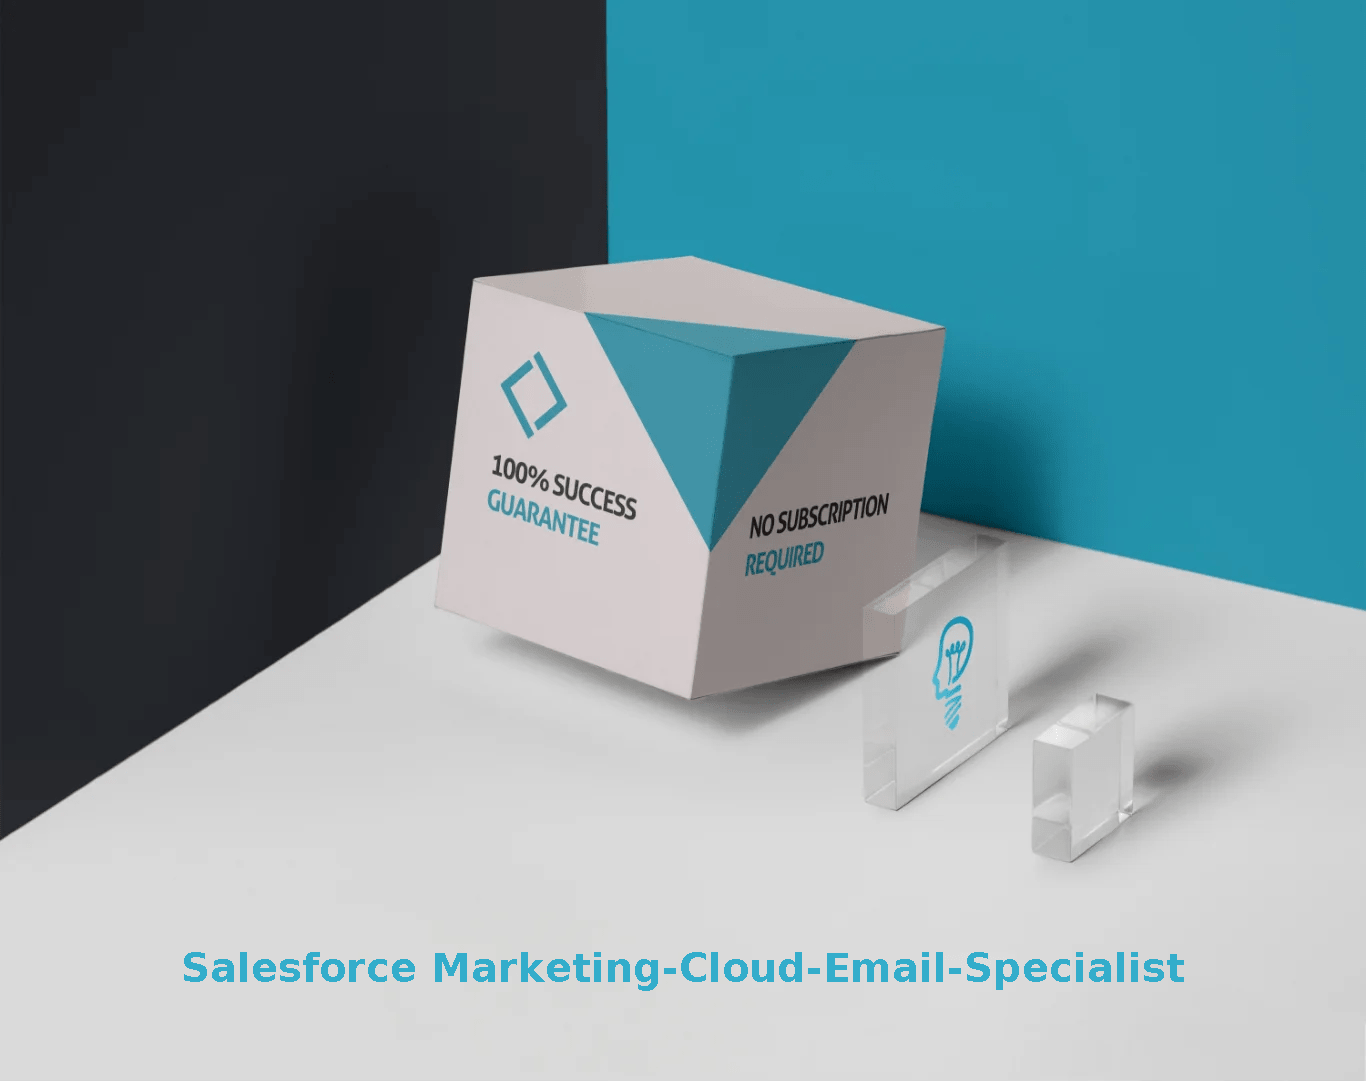 Marketing-Cloud-Email-Specialist Dumps